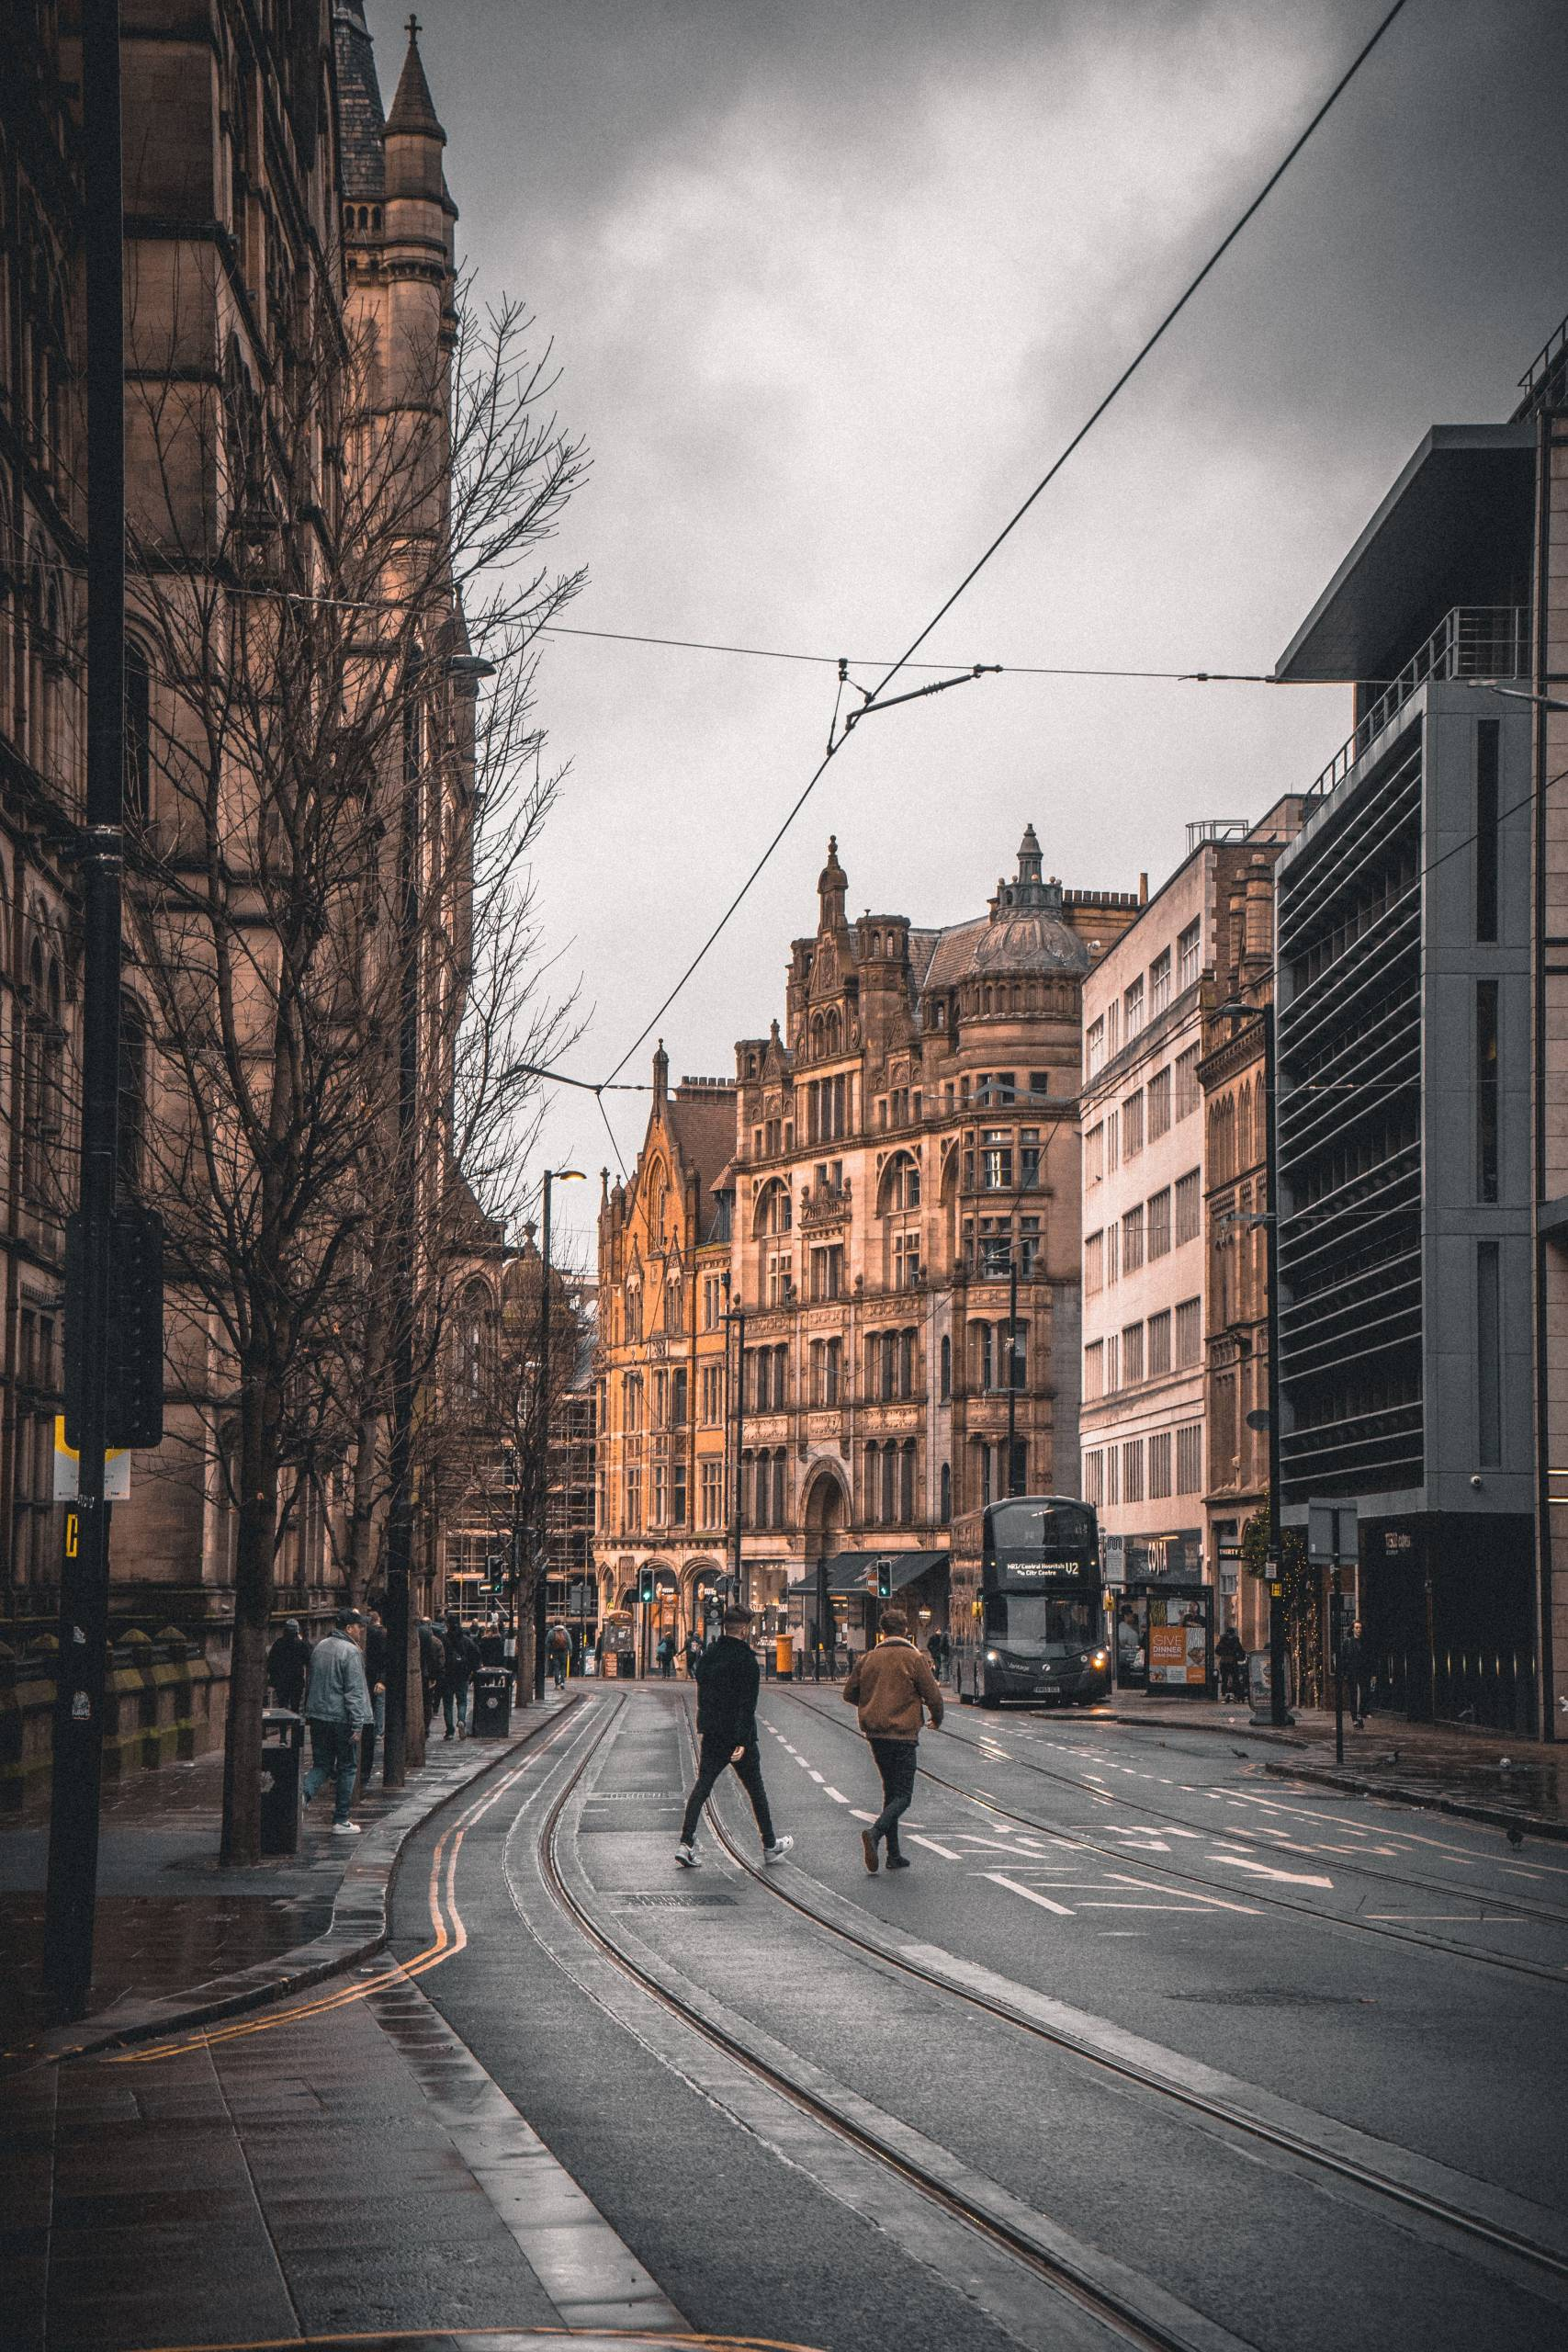 Web Design in Manchester - It's a hot topic | lovehtml.co.uk